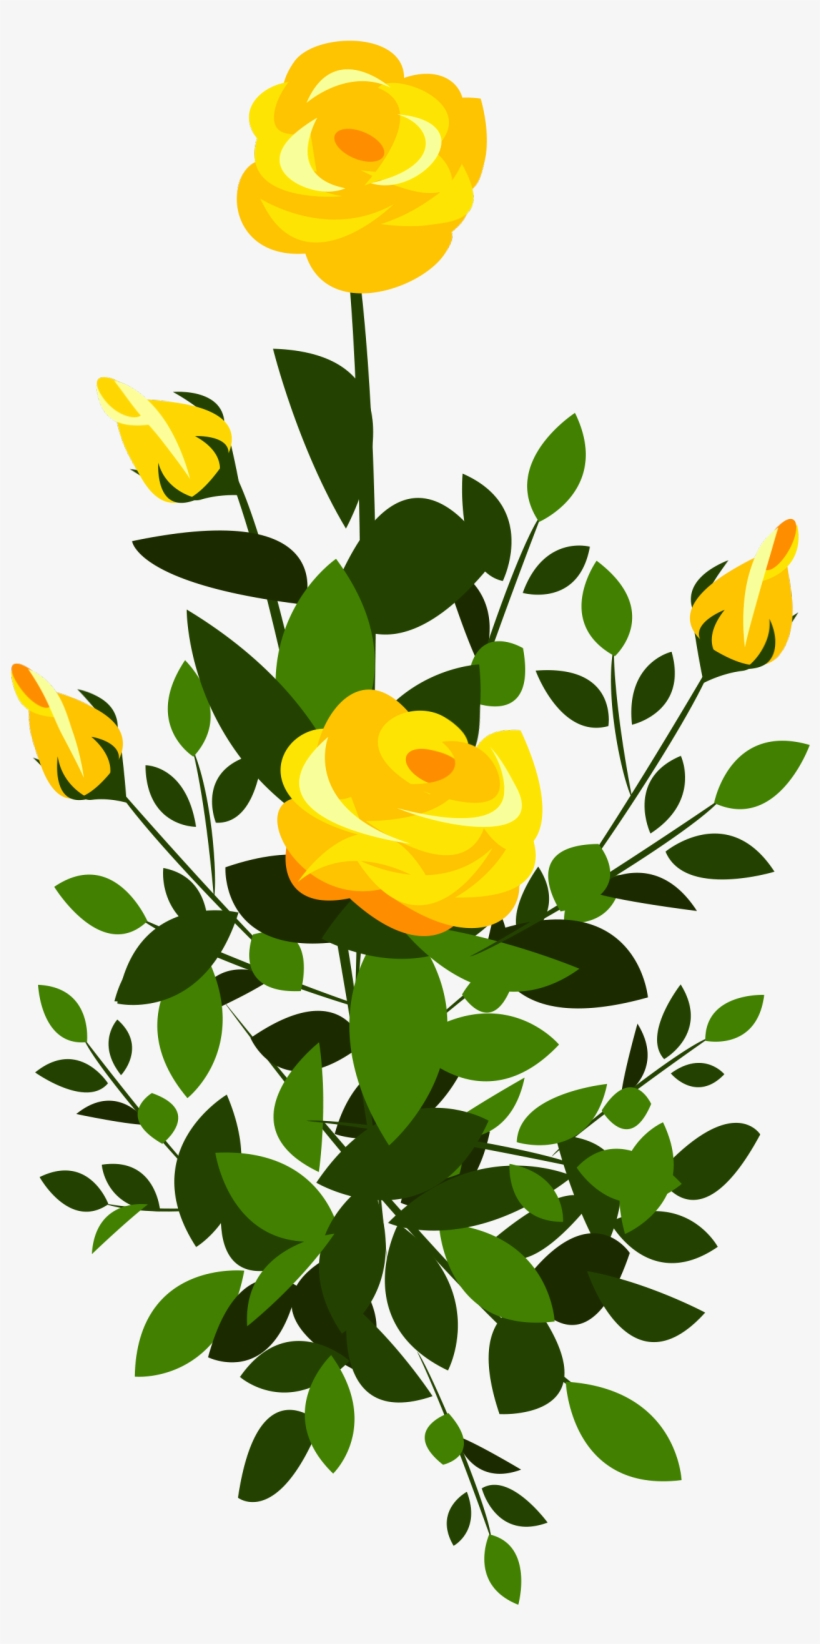 Yellow Rose Bush Png Clipart Image - Yellow Rose Bush Png ... banner freeuse stock